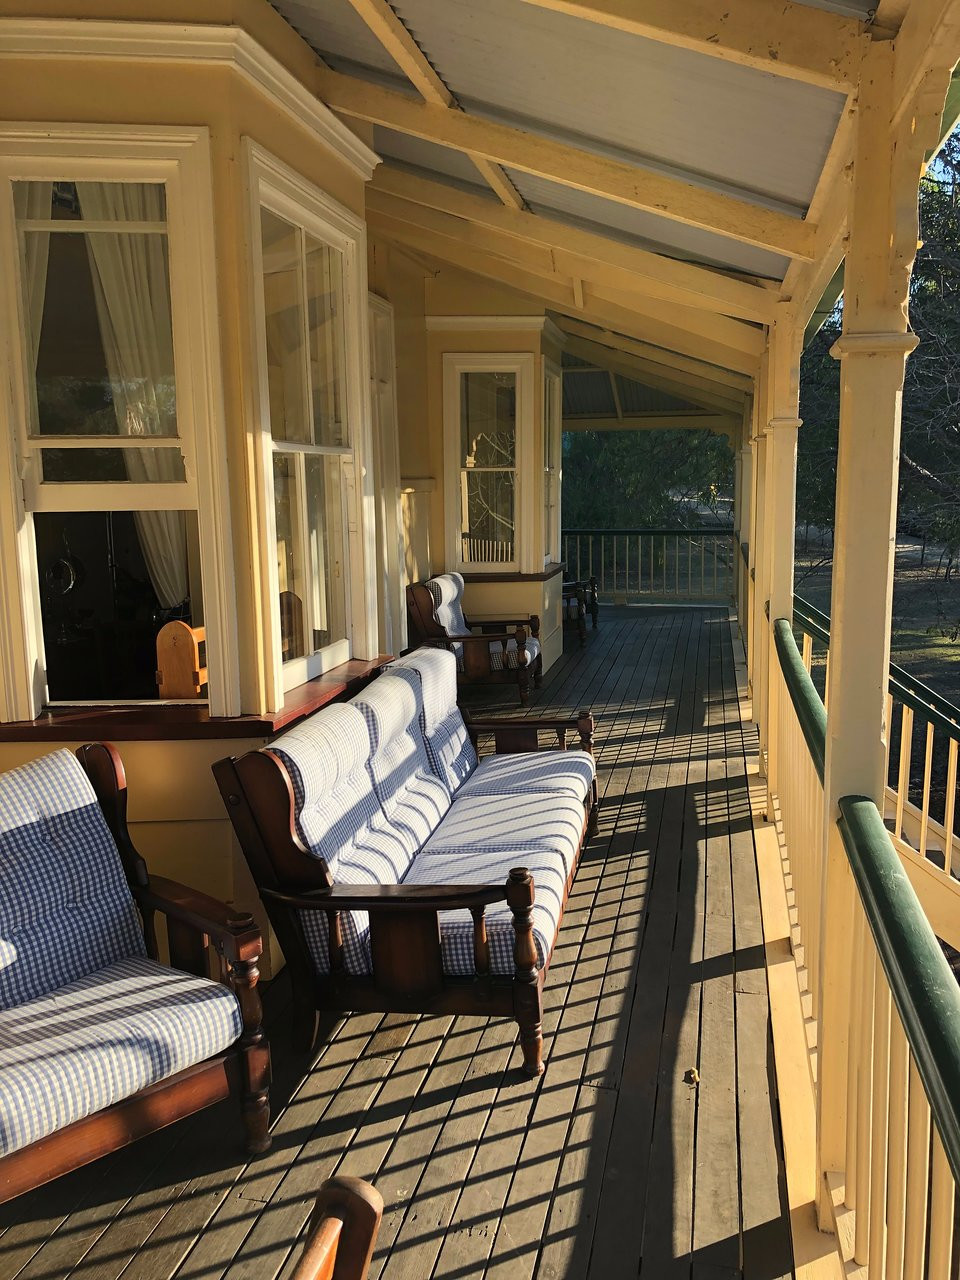 Queensland Hardwood Flooring Of Mt Barney Lodge Country Retreat 2018 Prices Reviews Barney View Pertaining to Mt Barney Lodge Country Retreat 2018 Prices Reviews Barney View Photos Of Campground Tripadvisor